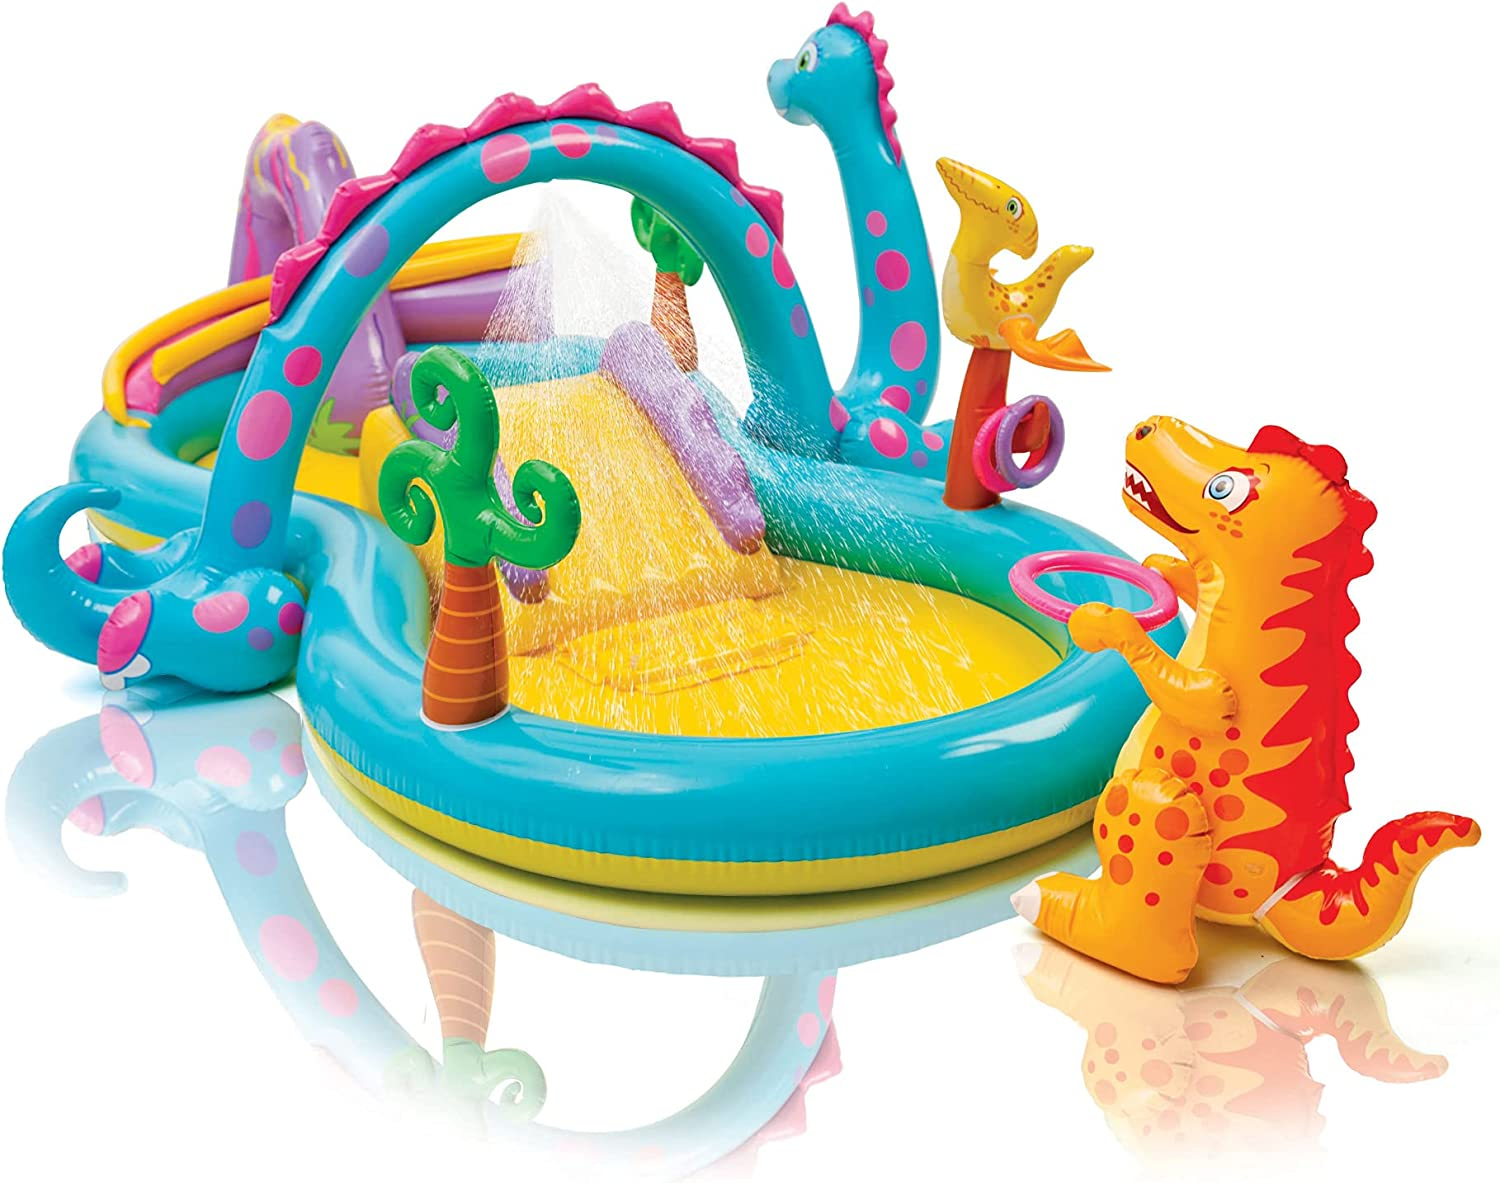 98in X 75in X 43in for Ages 2+ 2 Pack GHSF Dinosaur Inflatable Play Center